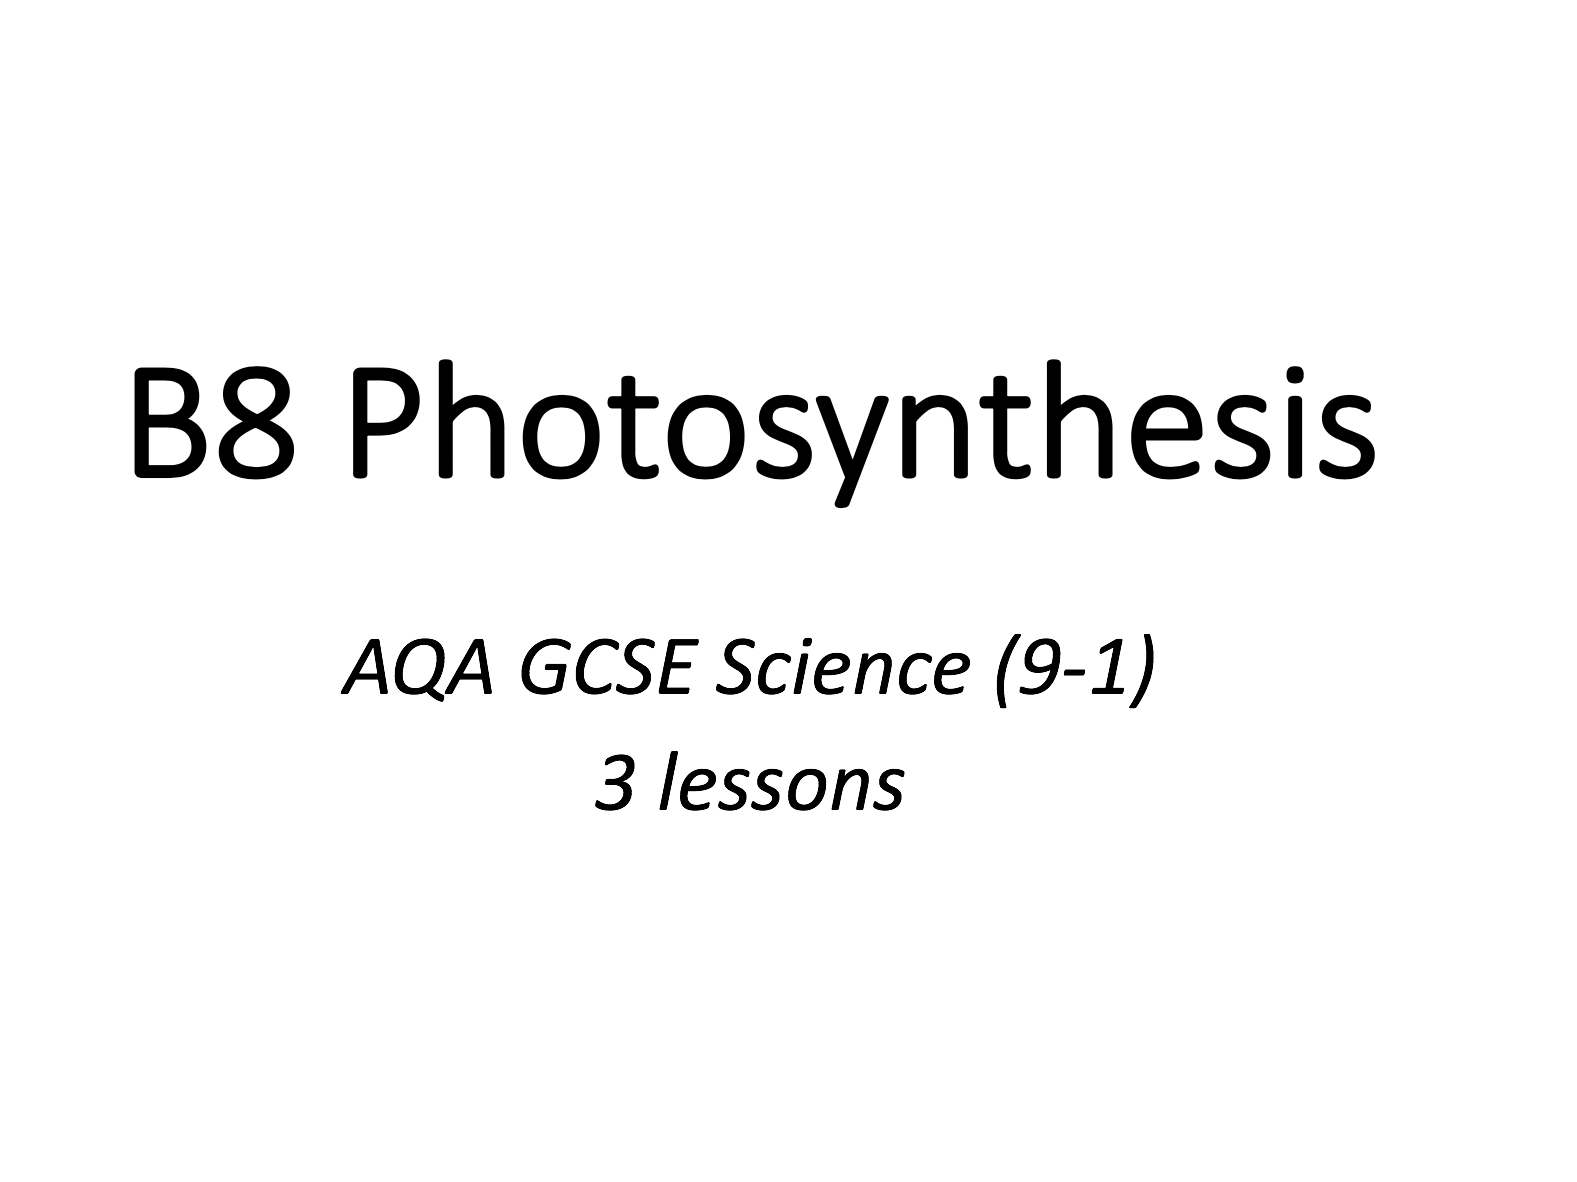 B8 Photosynthesis